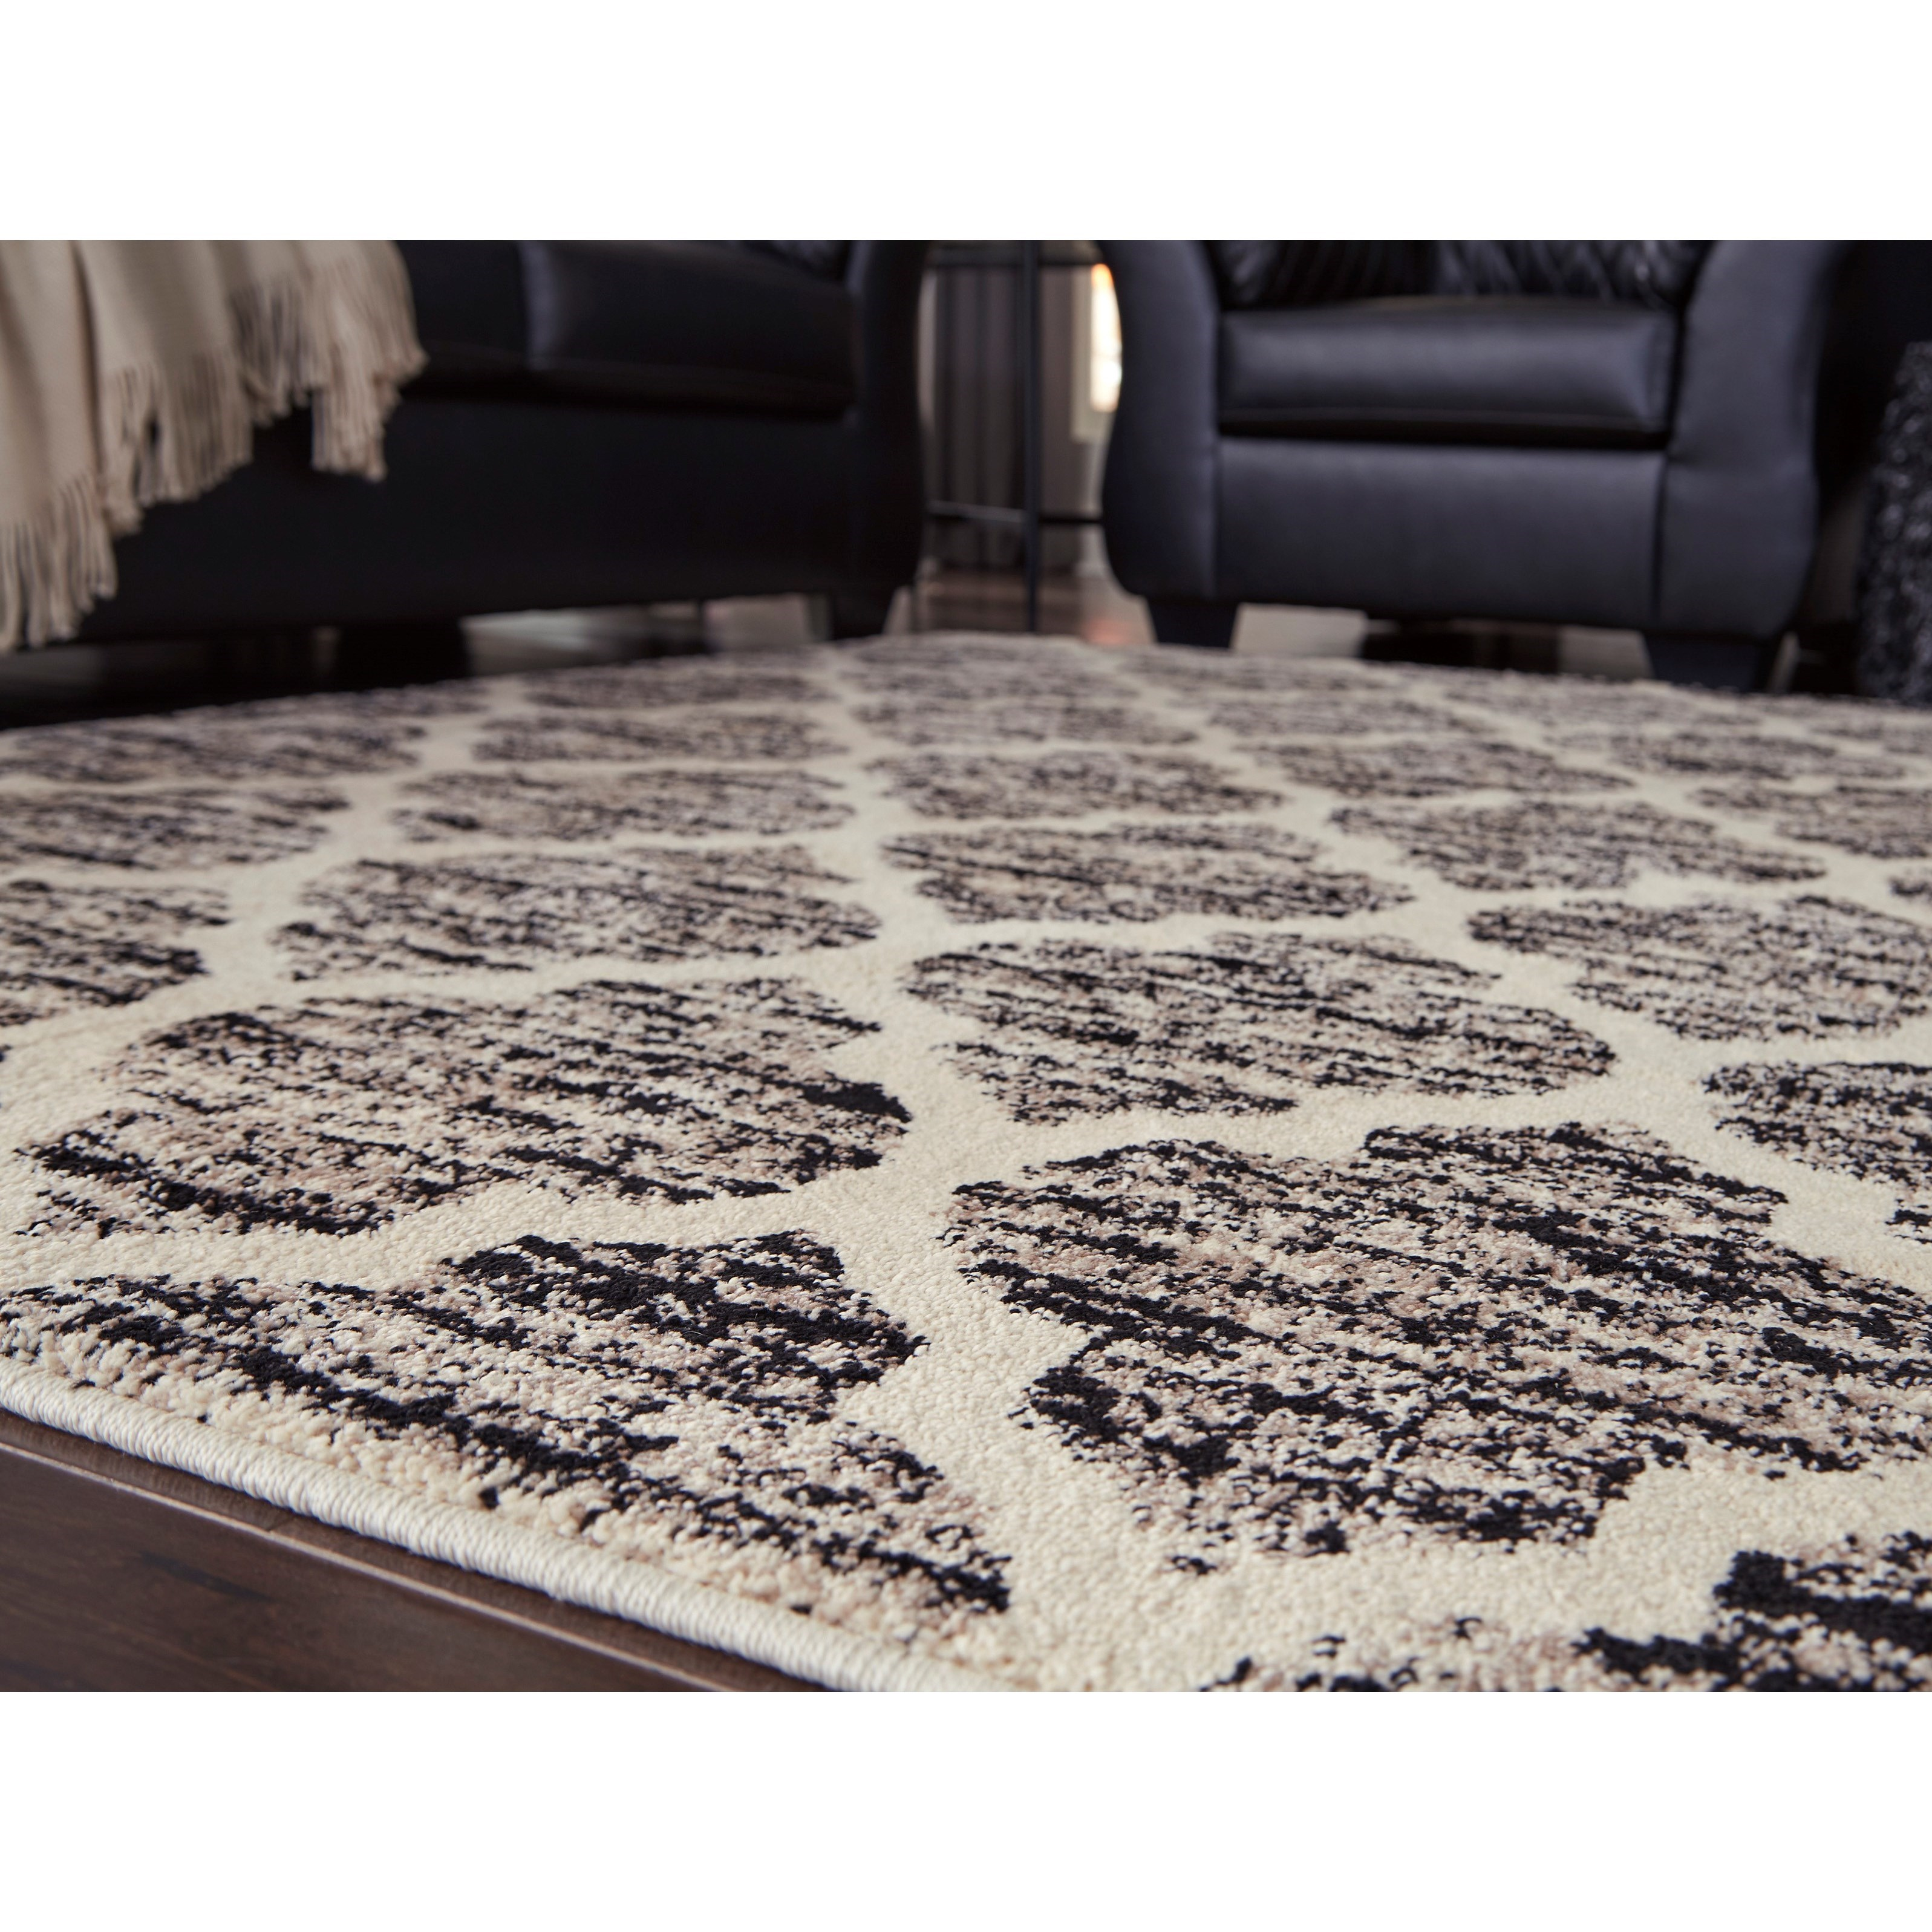 Transitional Area Rugs Kaila Black Cream Gray Large Rug